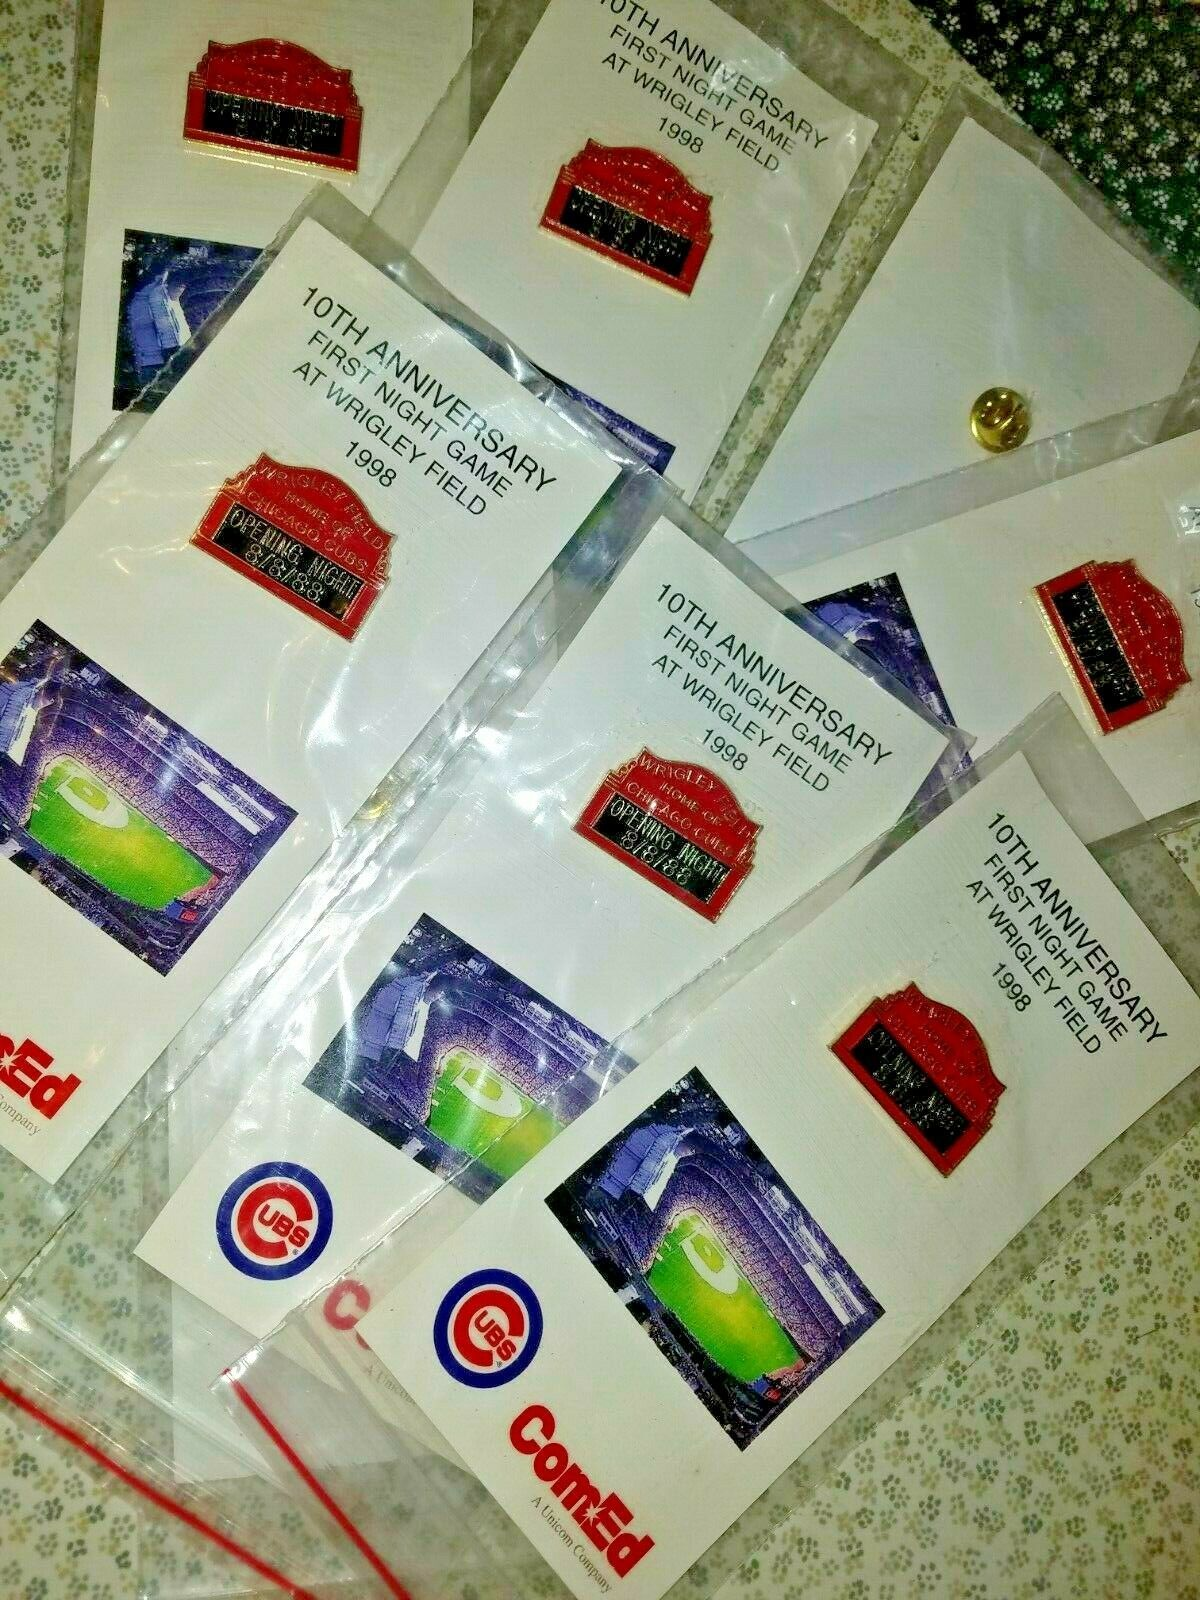 10th Anniversery 8-8-88 Chicago Cubs SGA pin 1st night Game